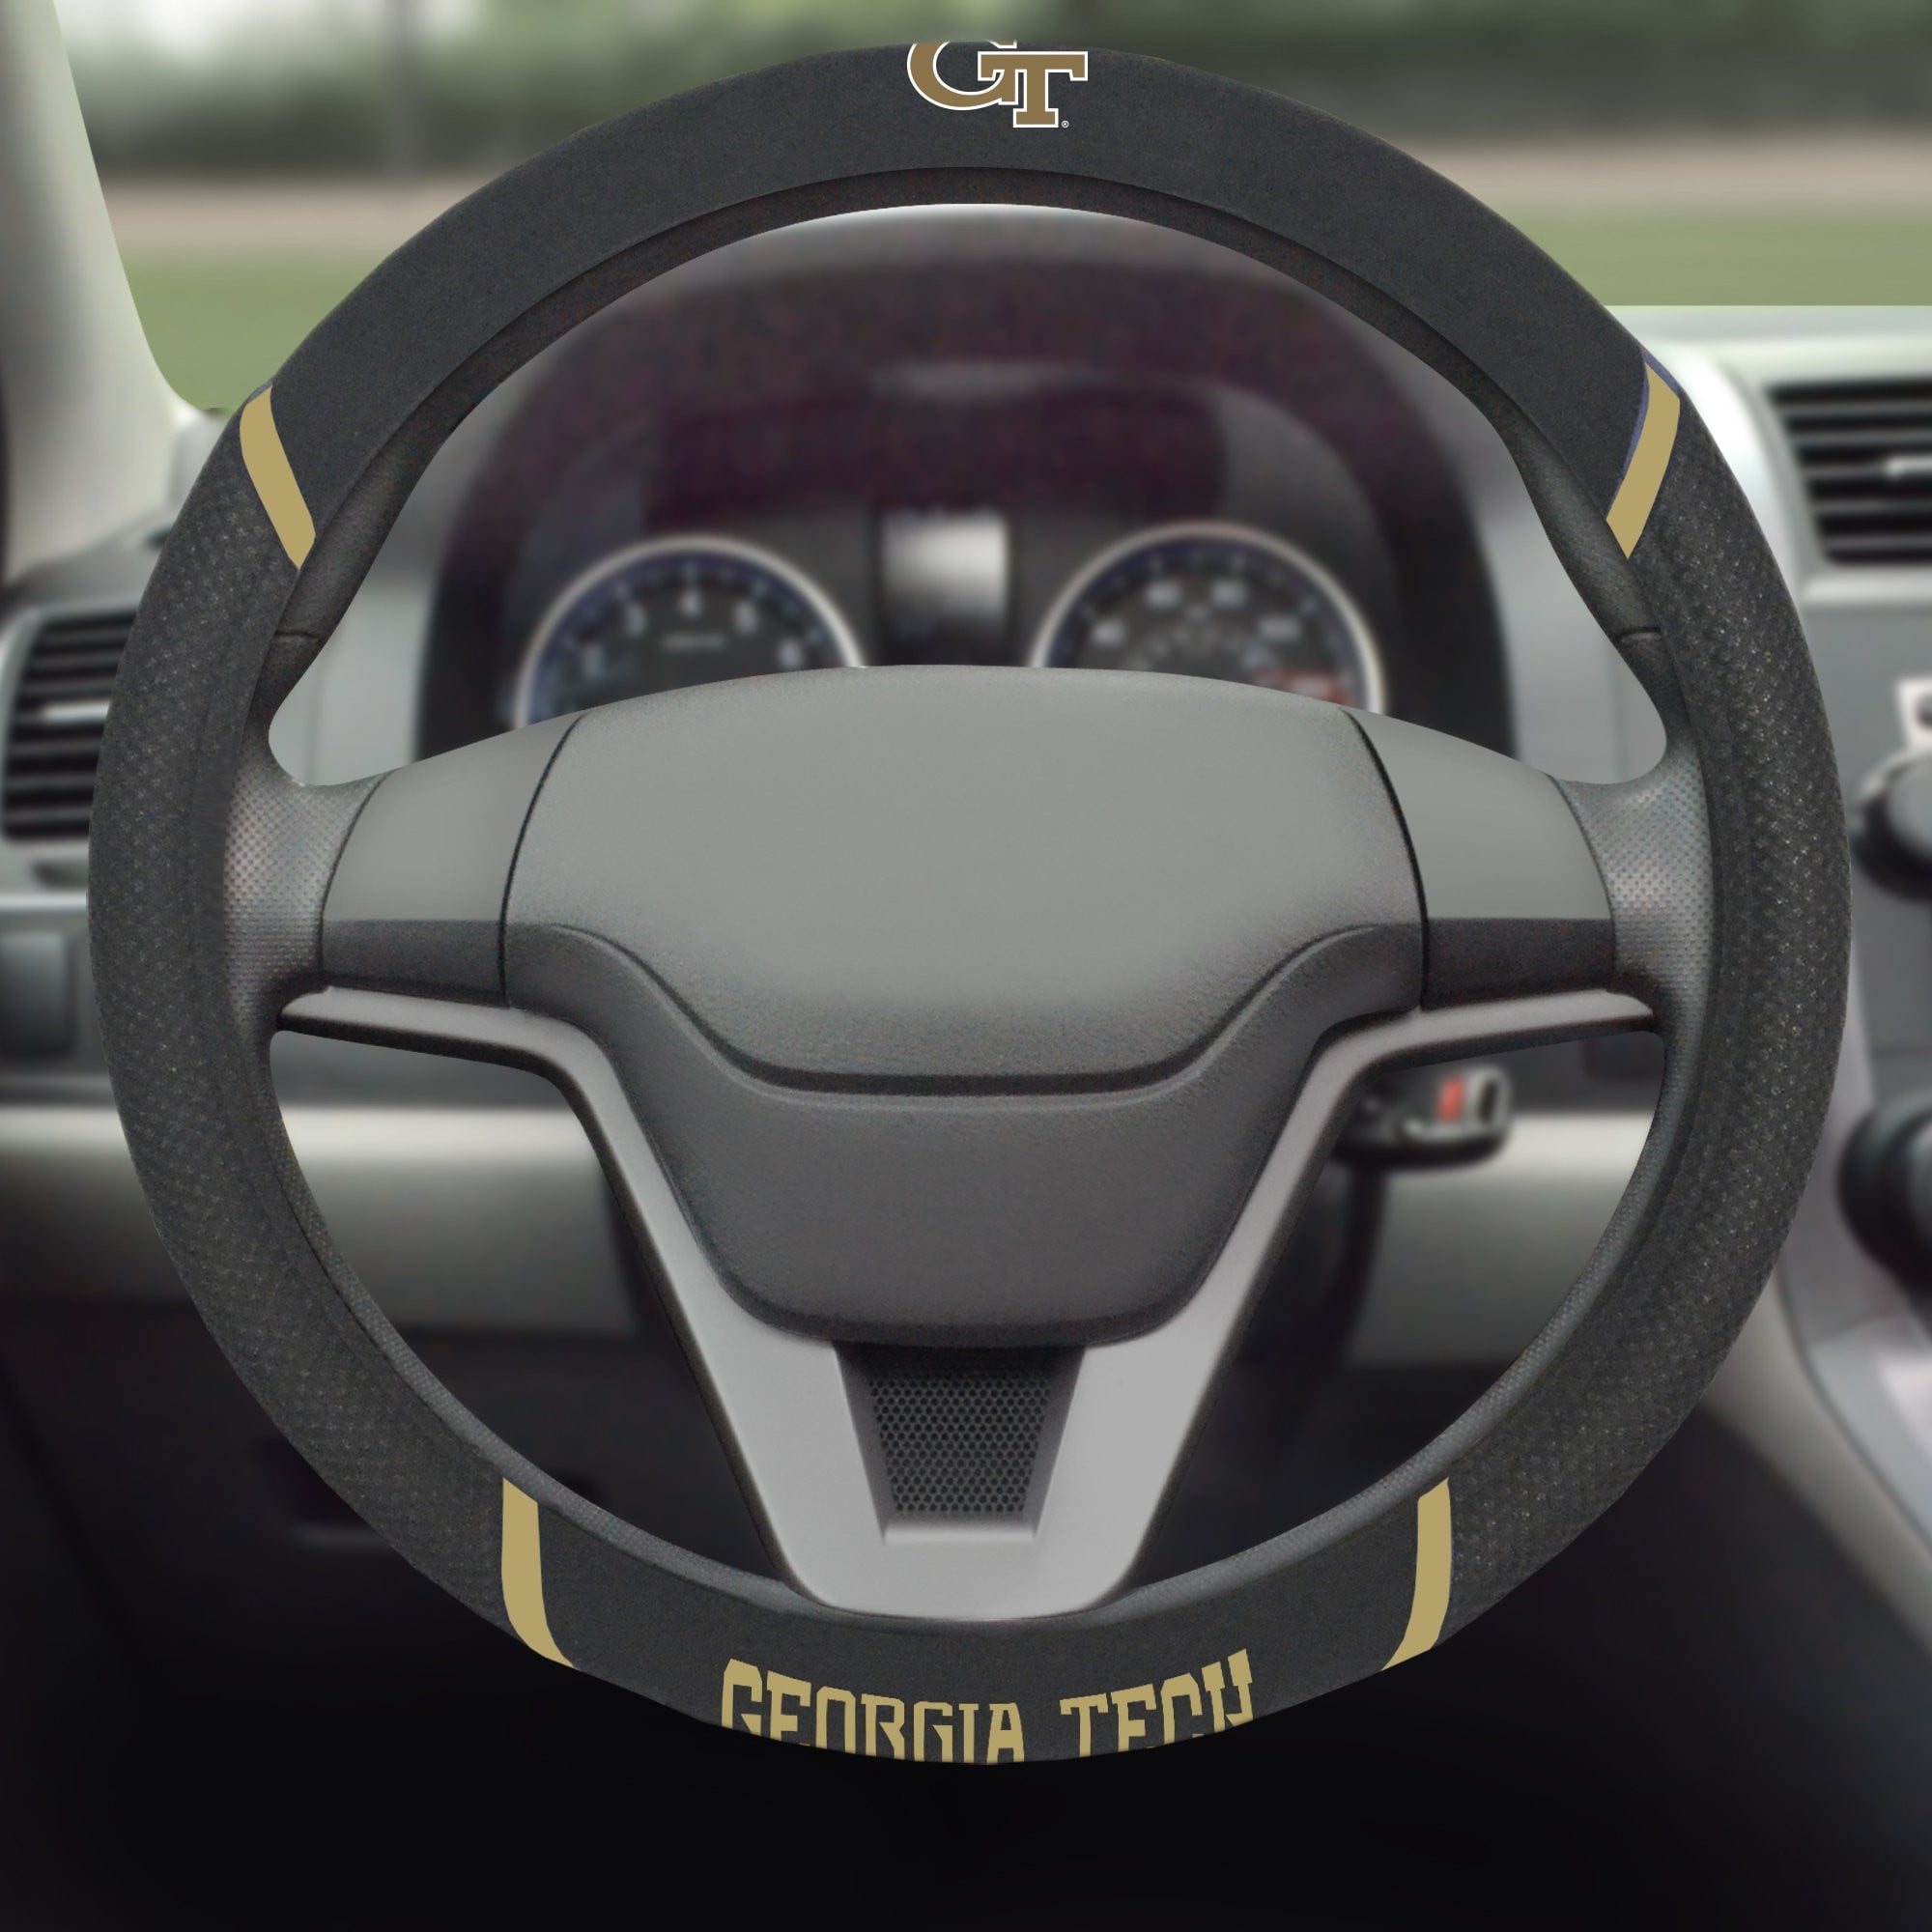 Georgia Tech Yellow Jackets Steering Wheel Cover 15